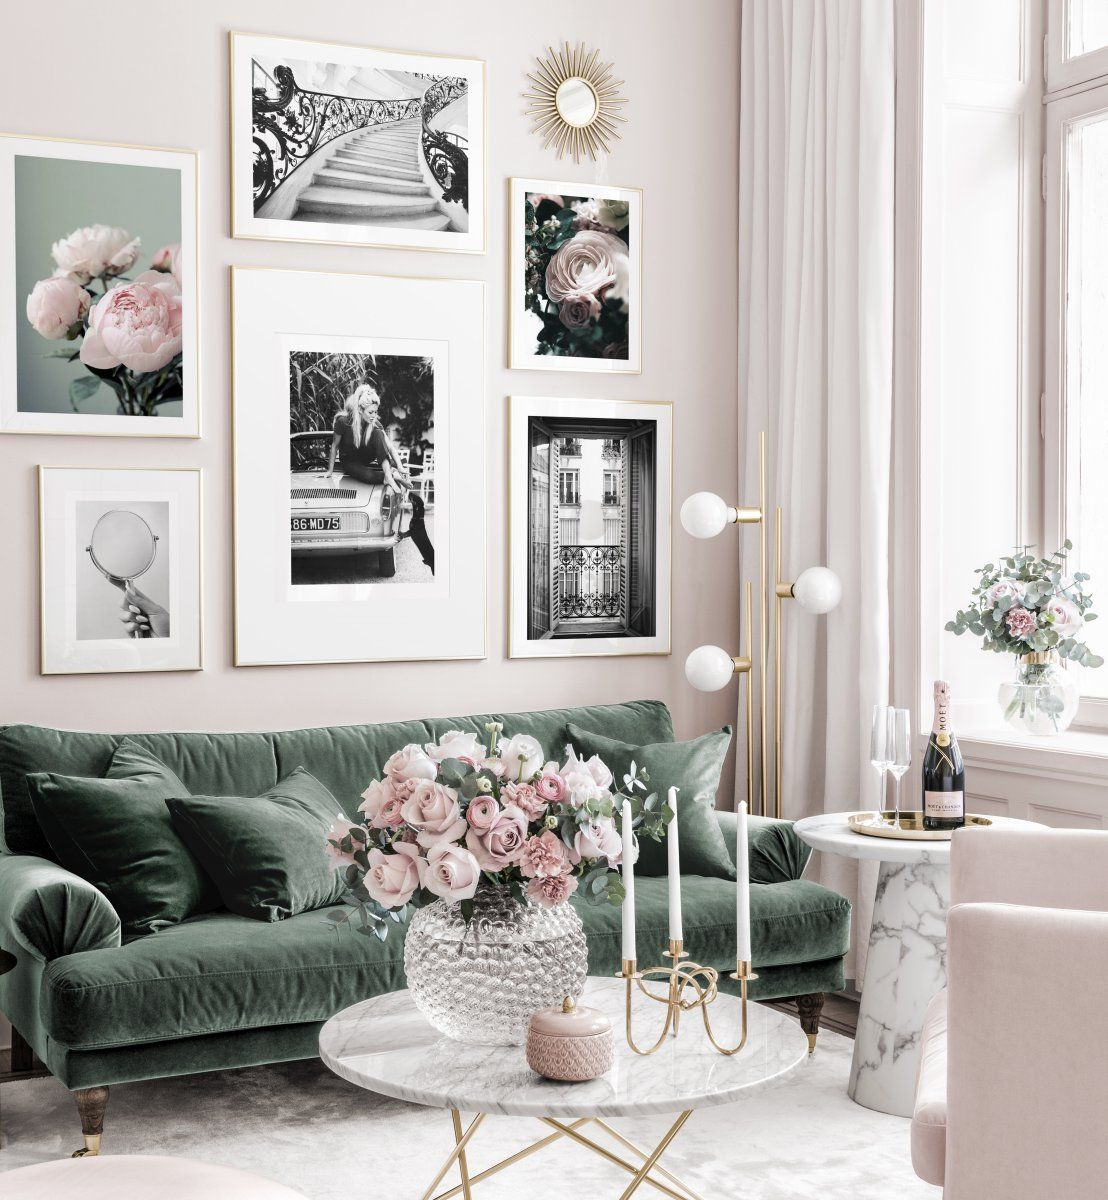 Fashionable Black White Gallery Wall Pink Flowers Brigitte Bardot Golden Frames Gallery Wall Inspiration Posters Living Room Decor Room Decor Bedroom Decor Room color fashionable inspiration